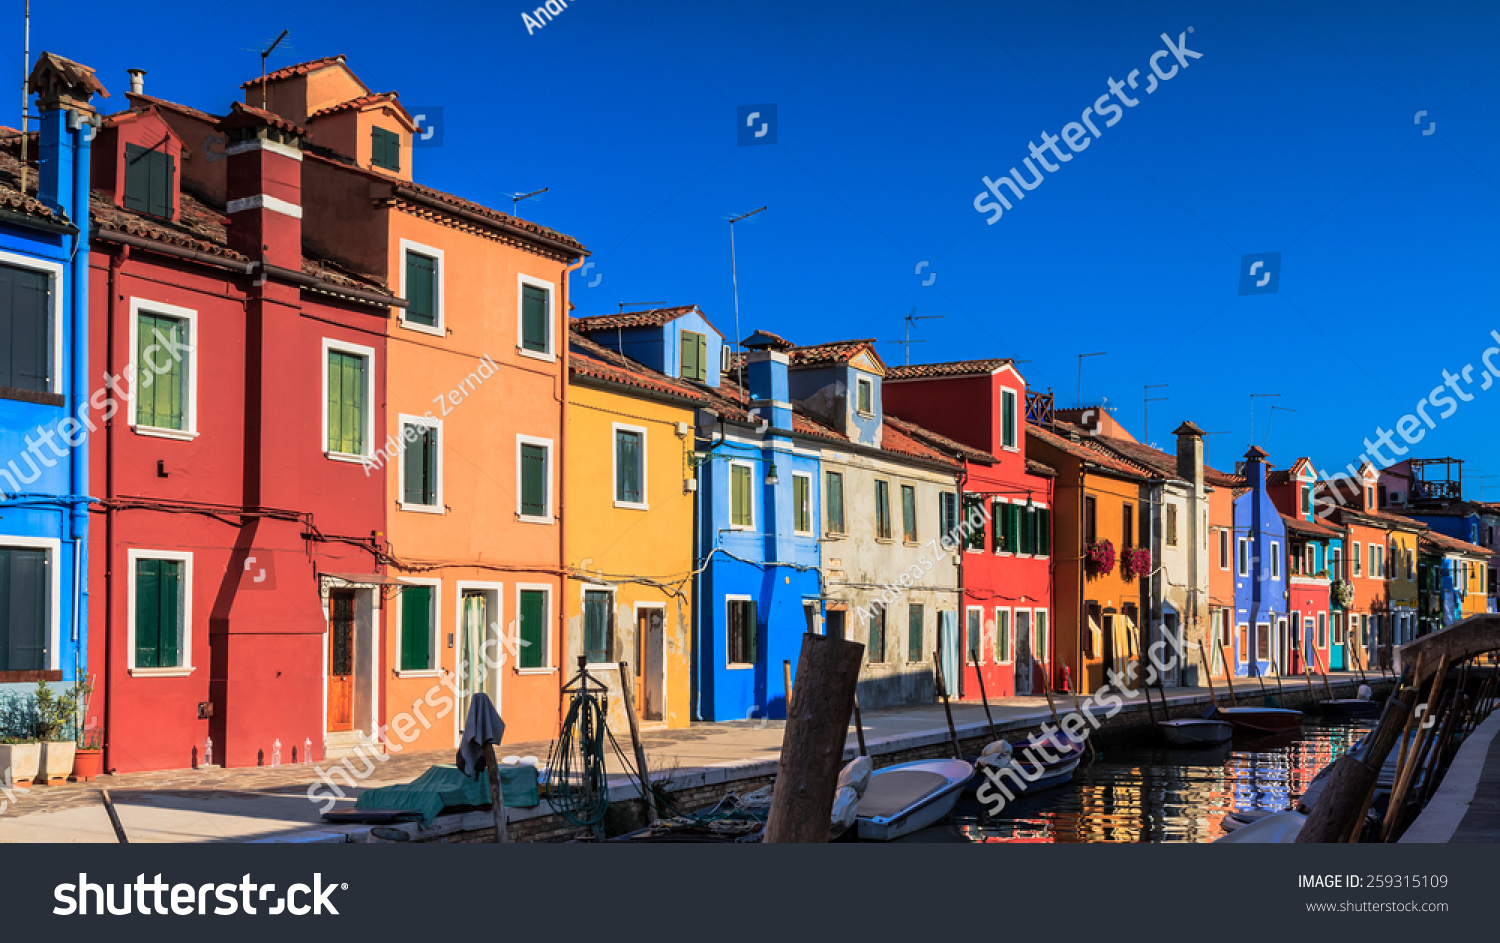 Colorful burano italy burano tourism -  Colorful Houses Of Burano Tourism Island In Preview Save To A Lightbox